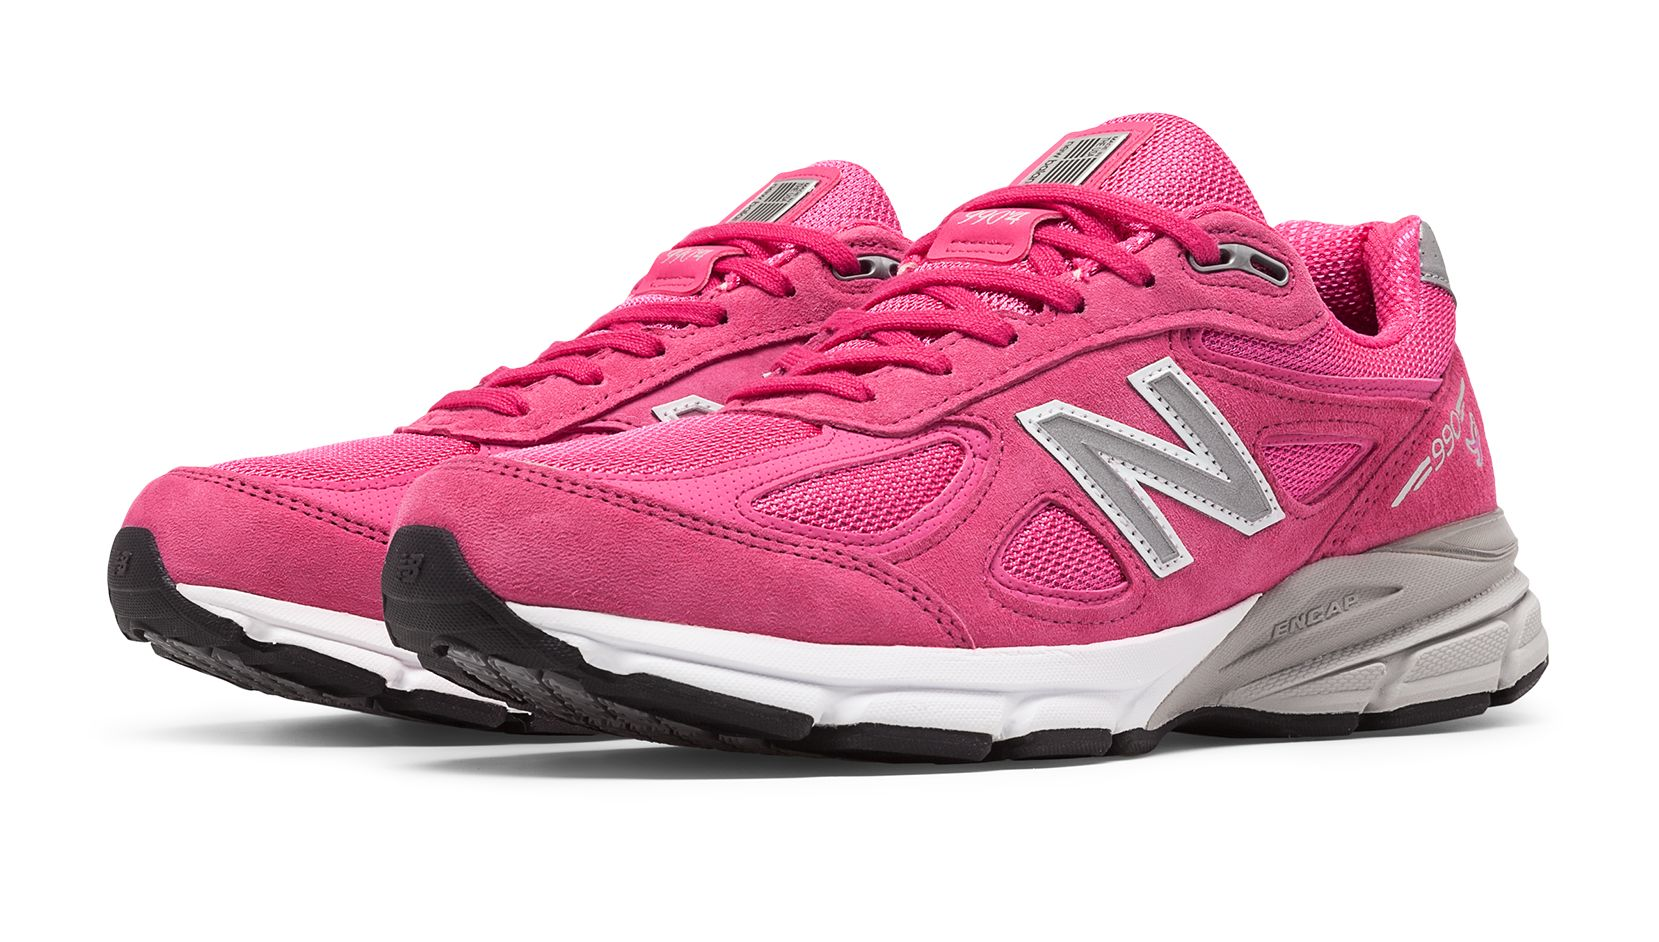 cheap for discount ff363 2ec1f MEN'S NEW BALANCE 990v4 - Pink Ribbon (Breast Cancer ...